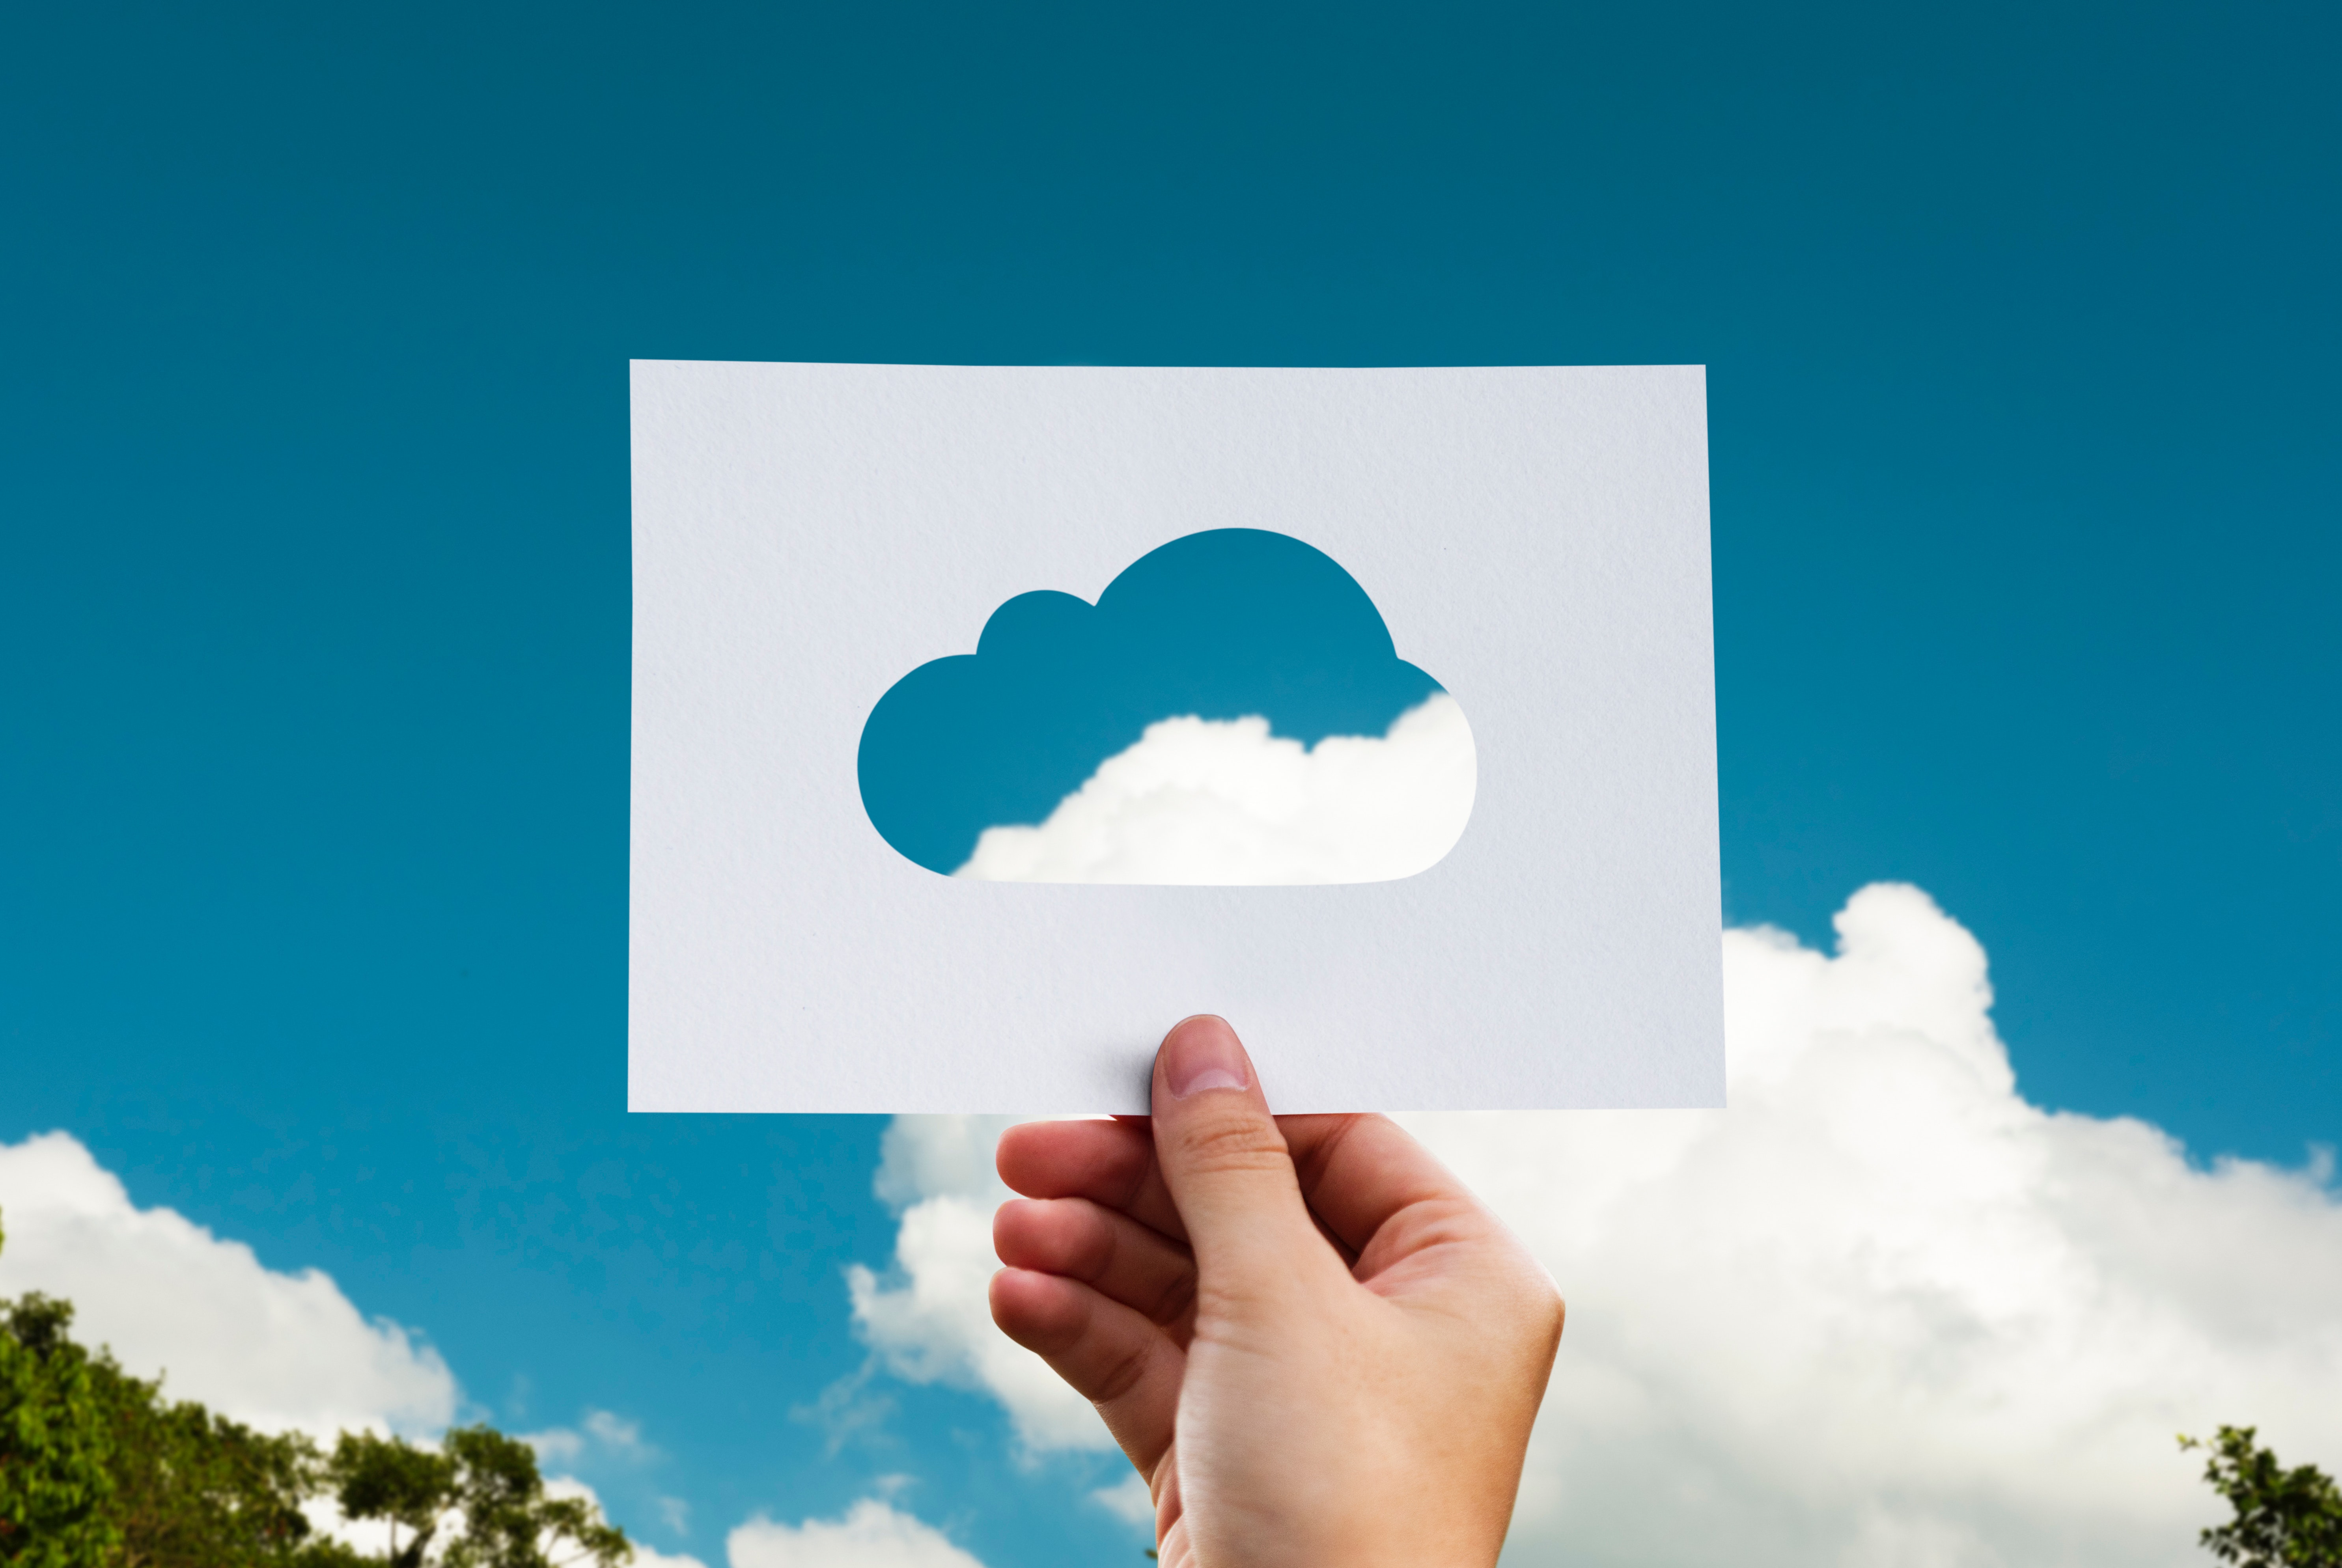 TECH-SPERT TUESDAY: Cloud Computing, the Sky's the Limit!